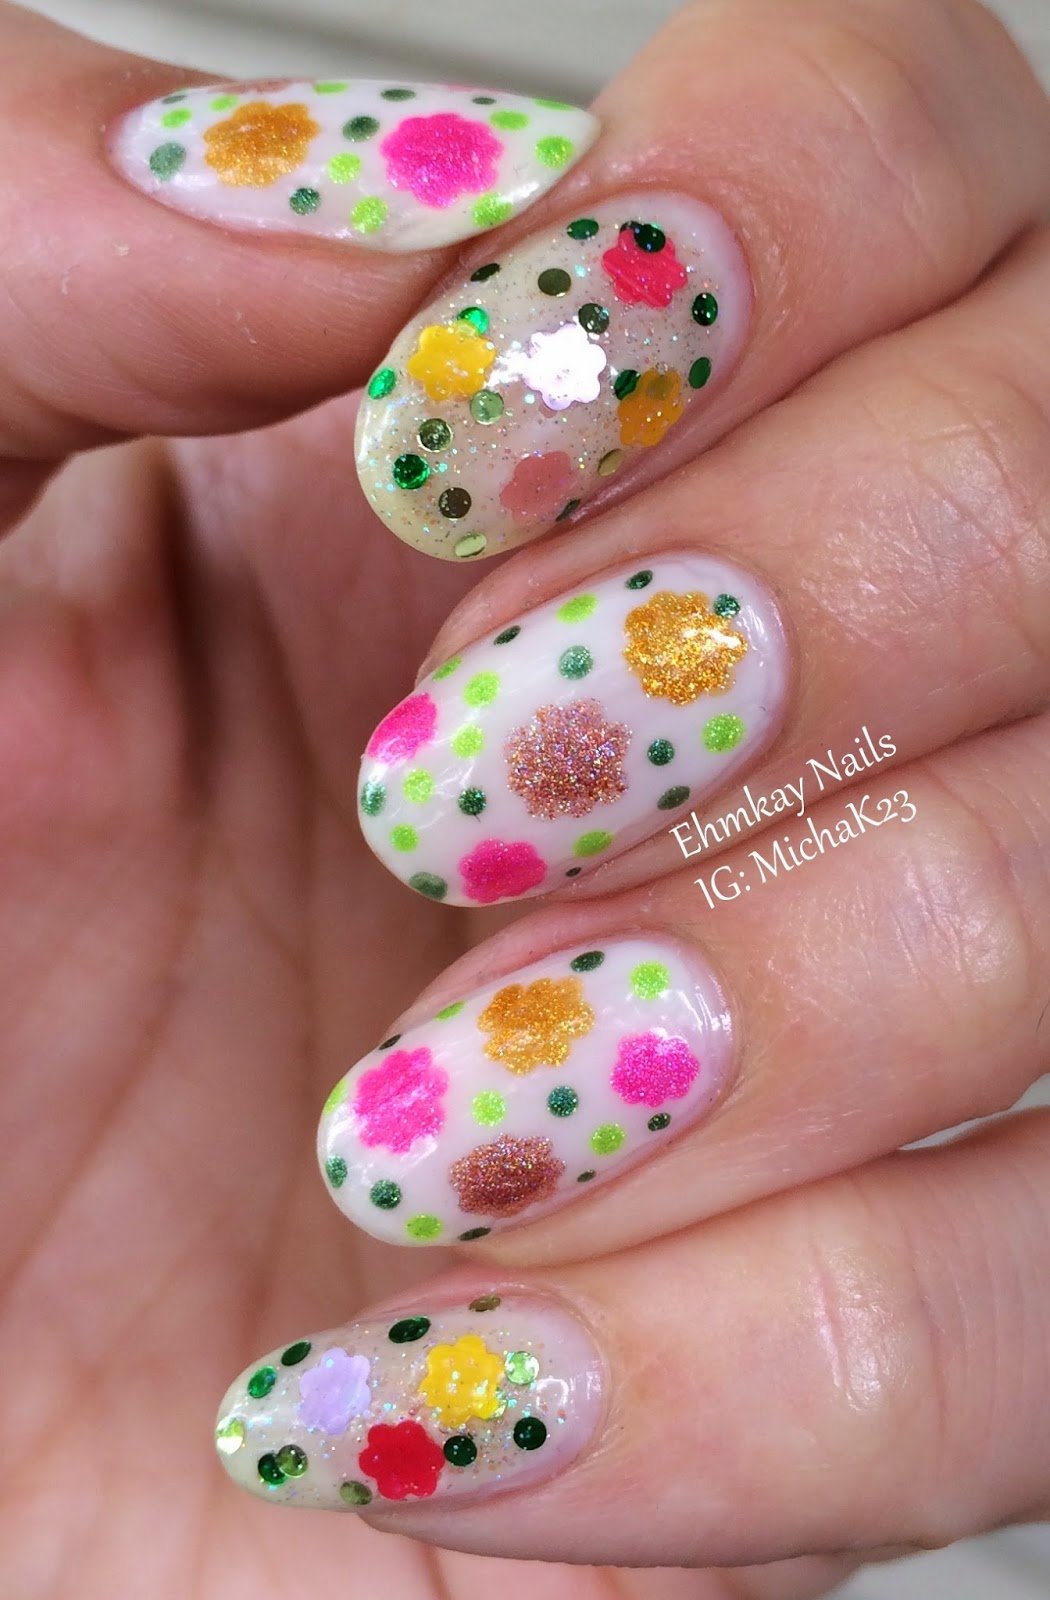 Ehmkay Nails Daisy Nail Art With Red Dog Designs Flower Power With